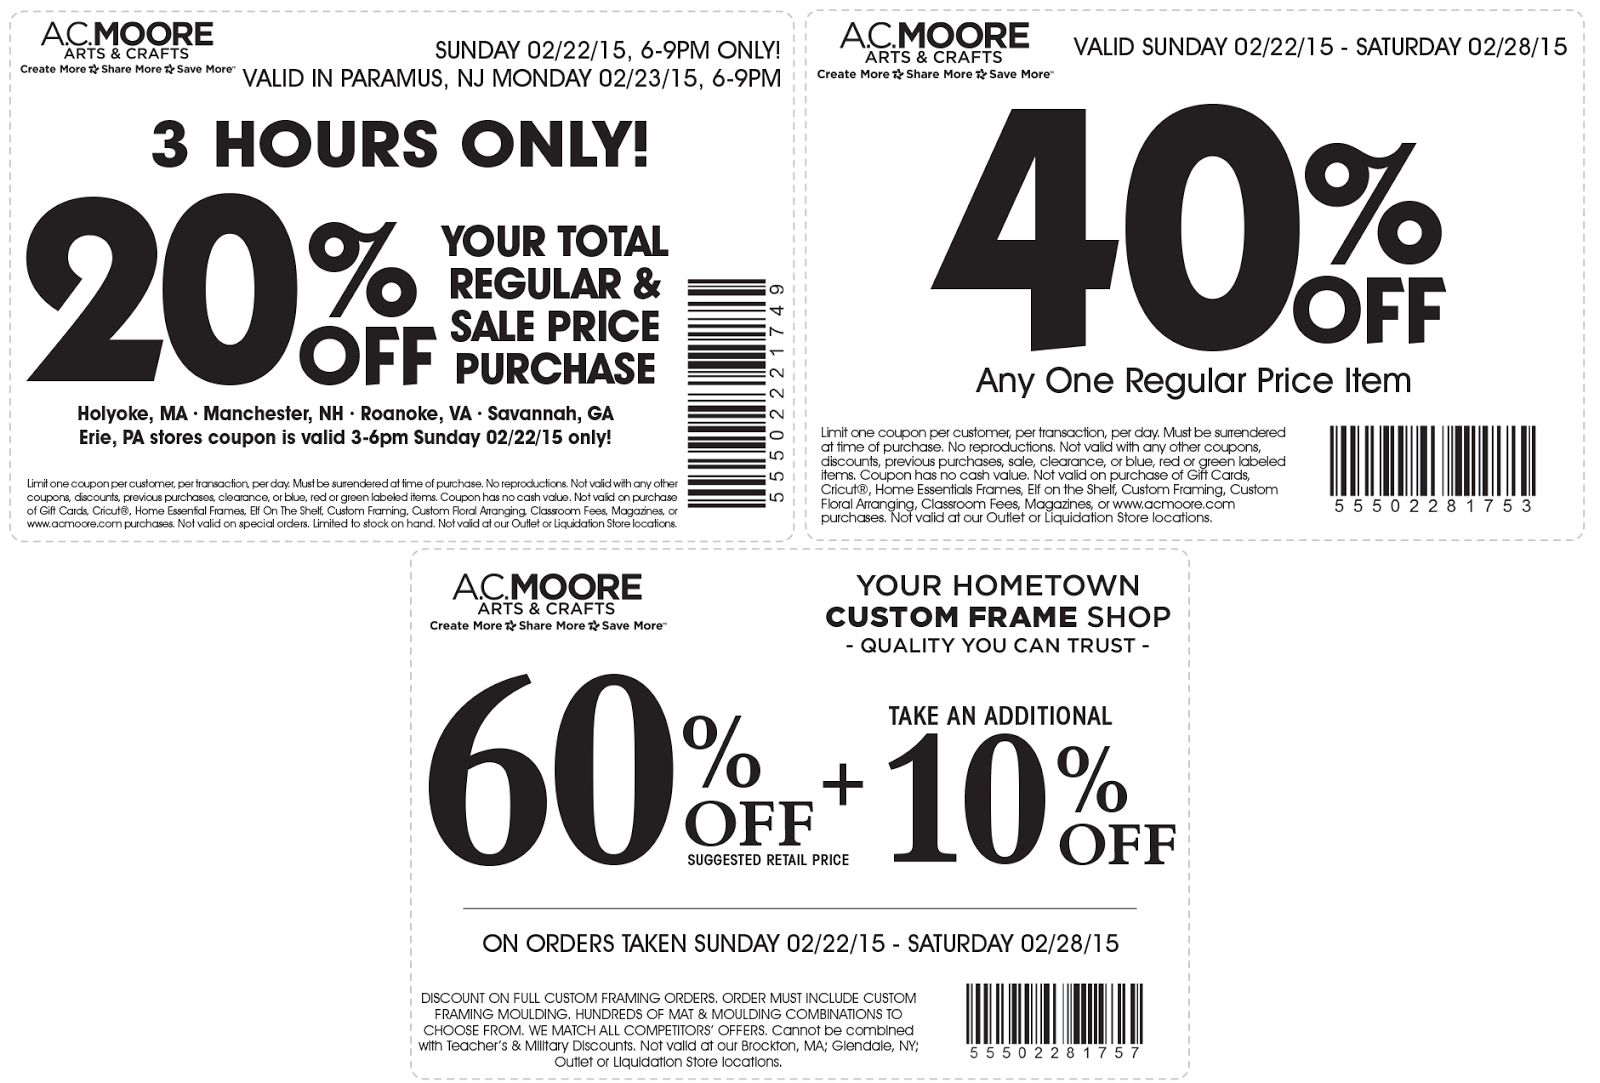 photograph about Ac Moore Printable Coupon titled discount codes - Hair salons inside wellington fl